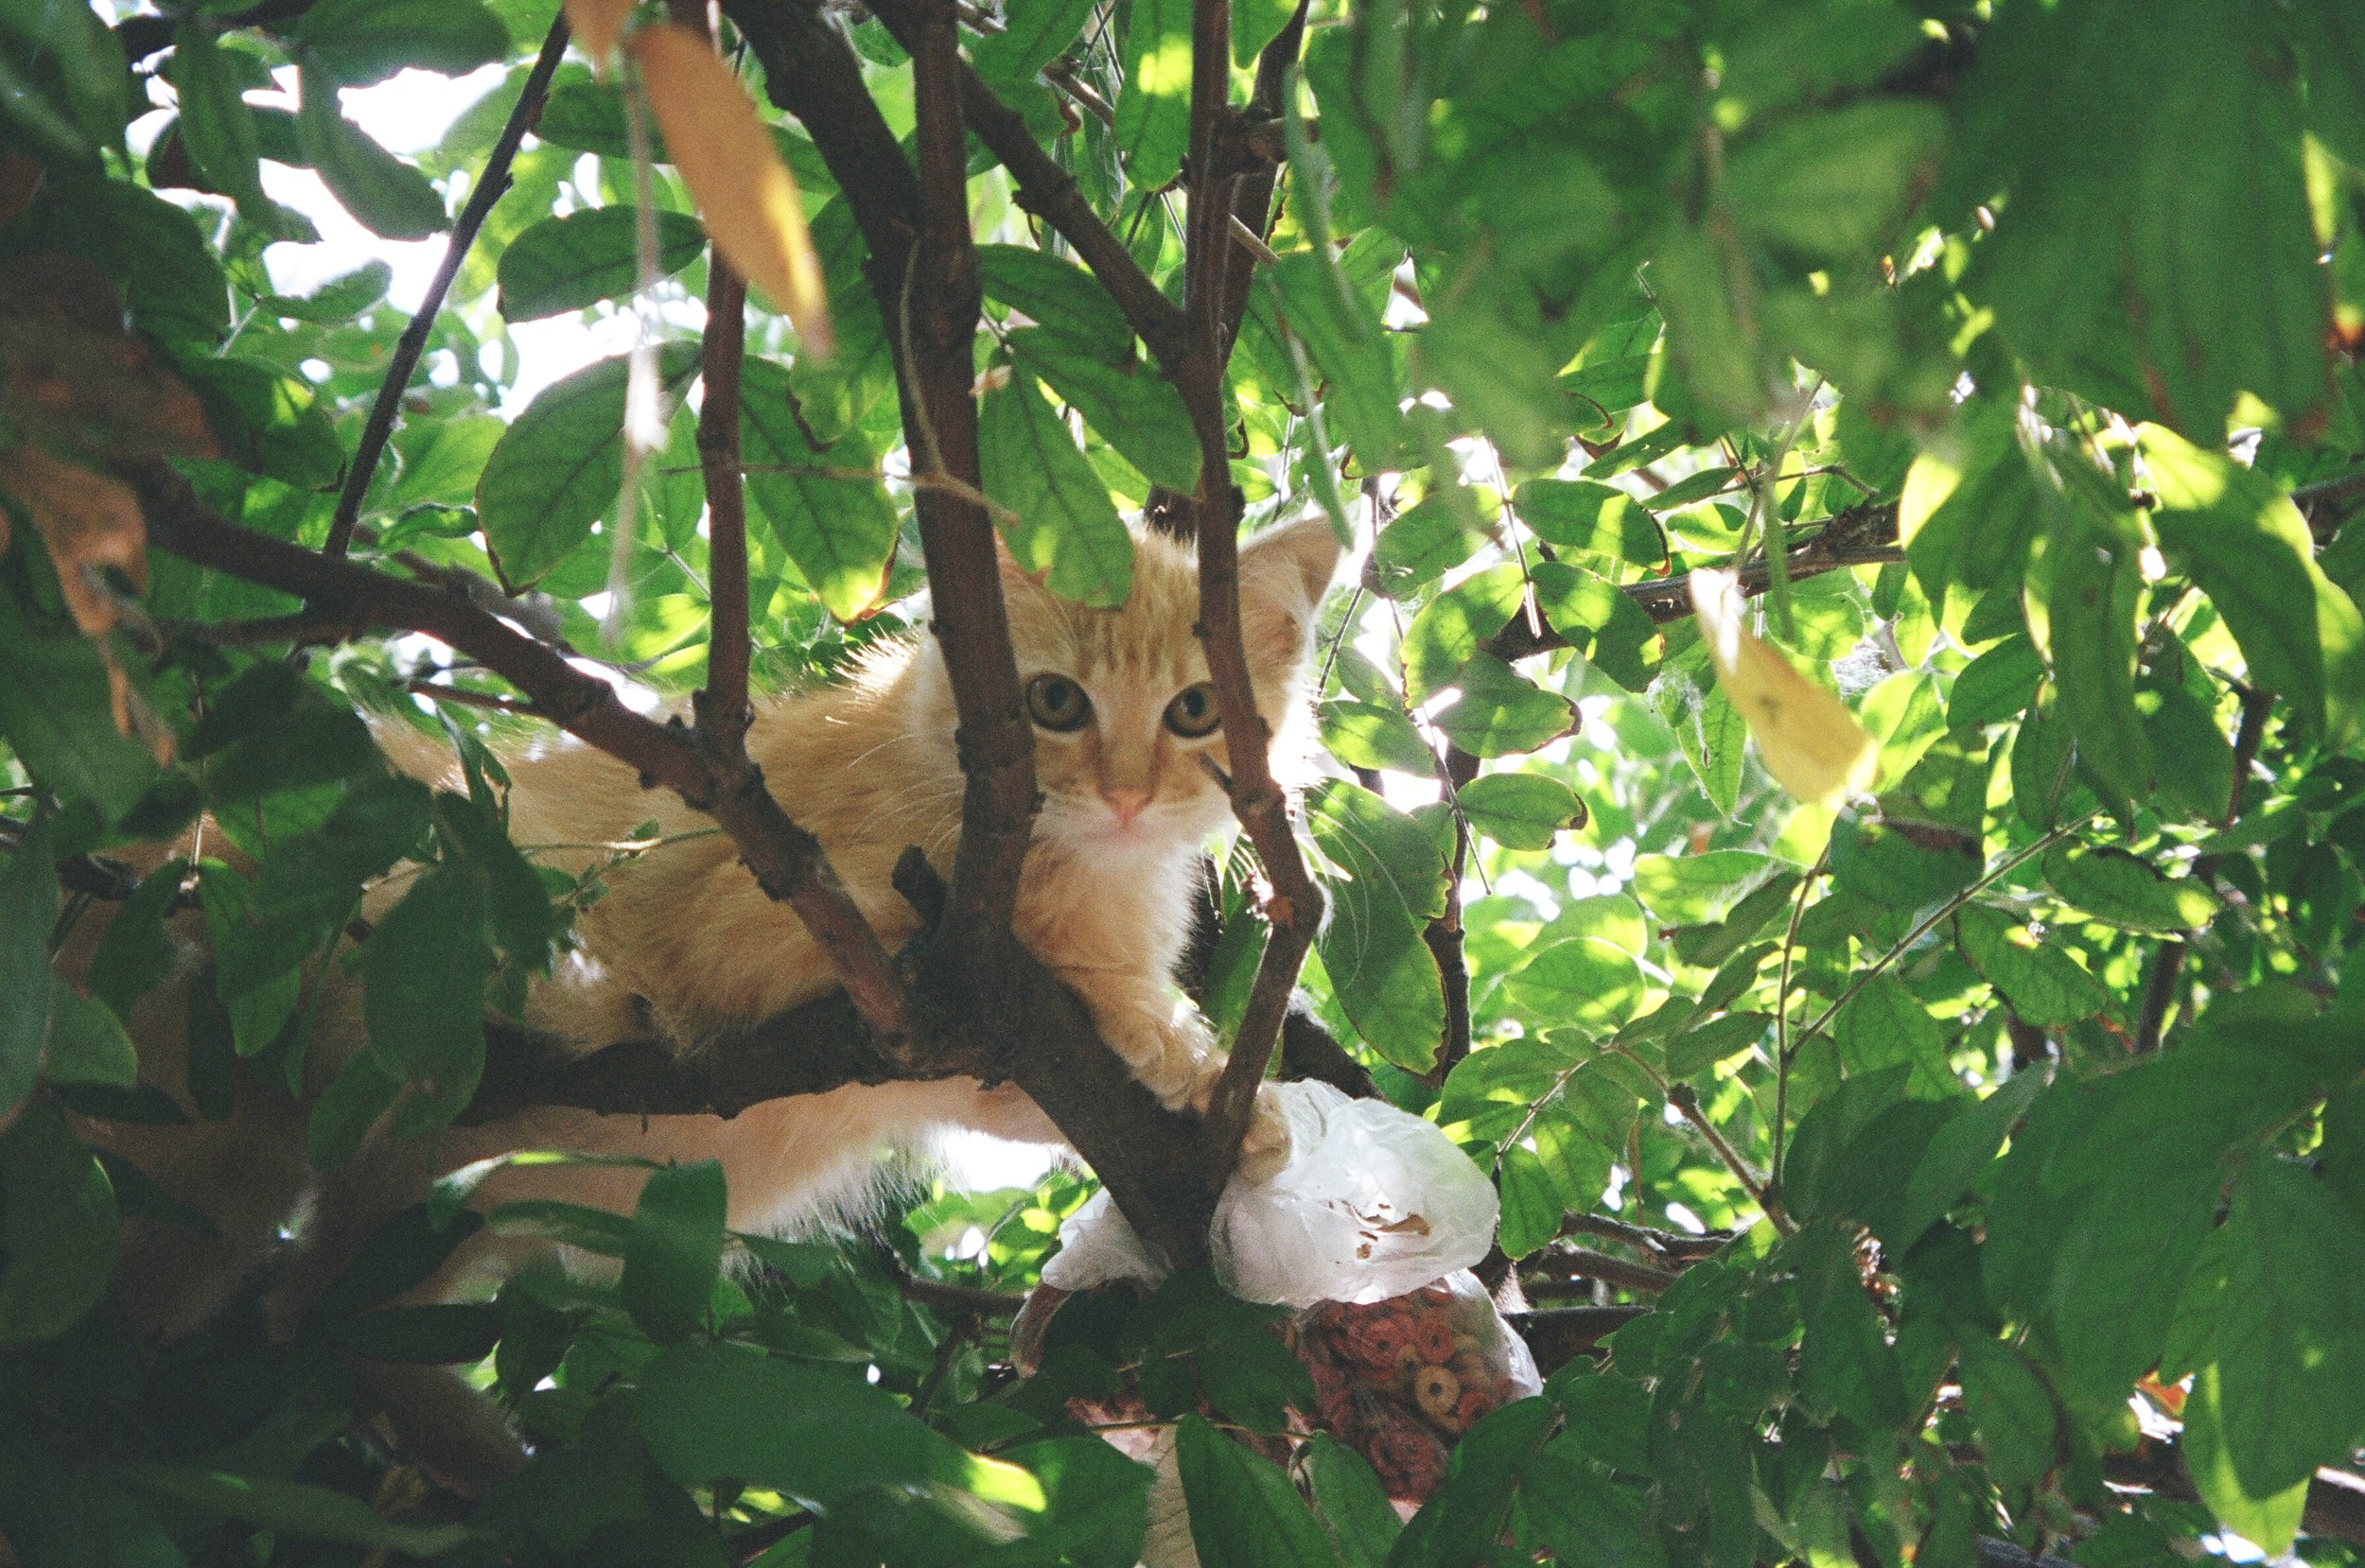 In Hollenbeck Park there are two wild kittens who live in the bushes. I talk to them sometimes and call them my babies. One day they may let me pet them, maybe not.